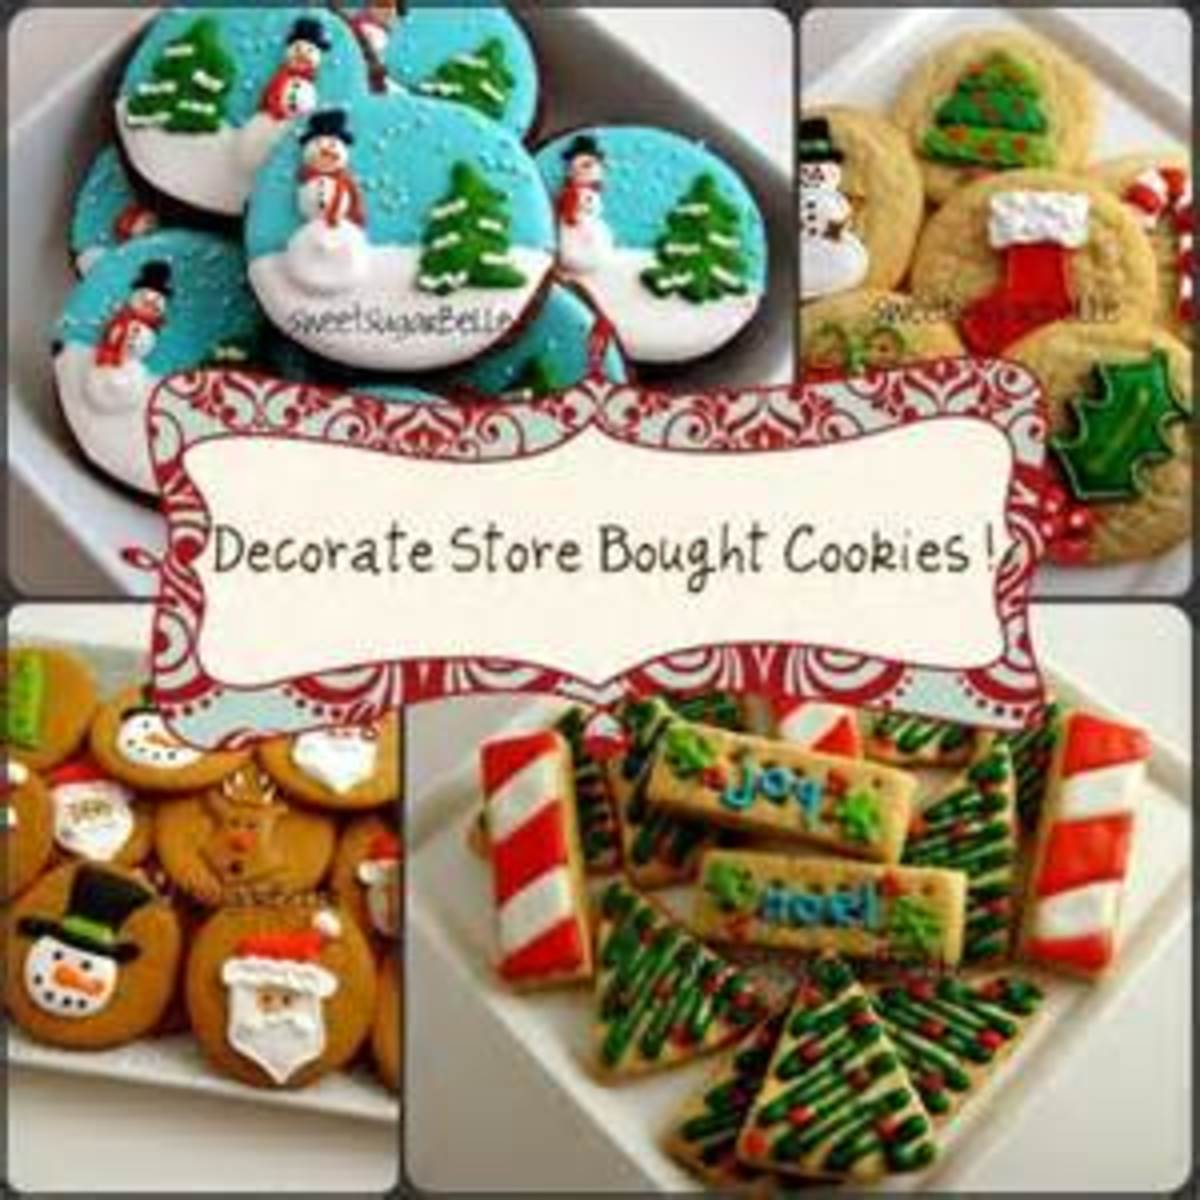 decorate store bought cookies for that special event